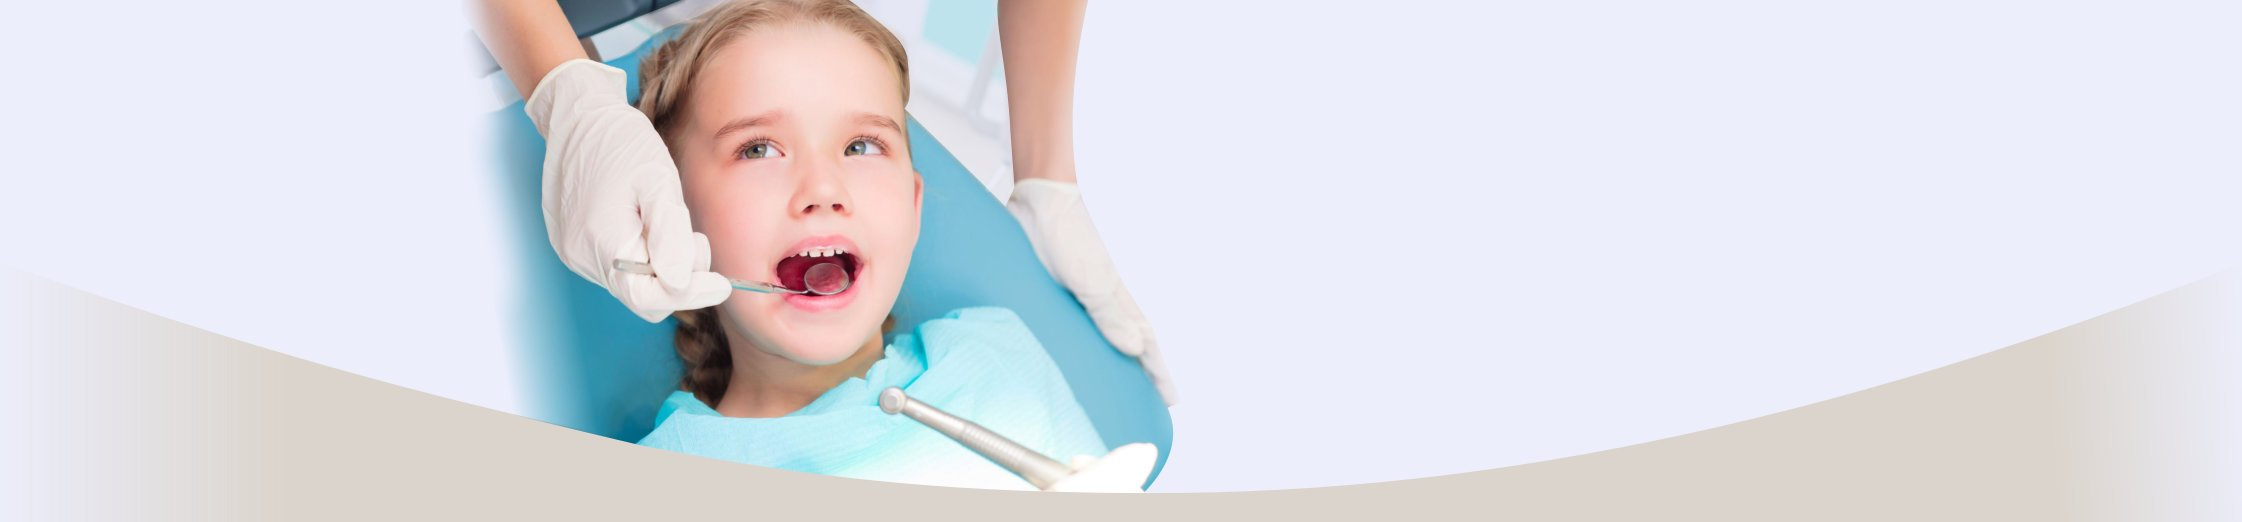 slider-pediatric-dentistry